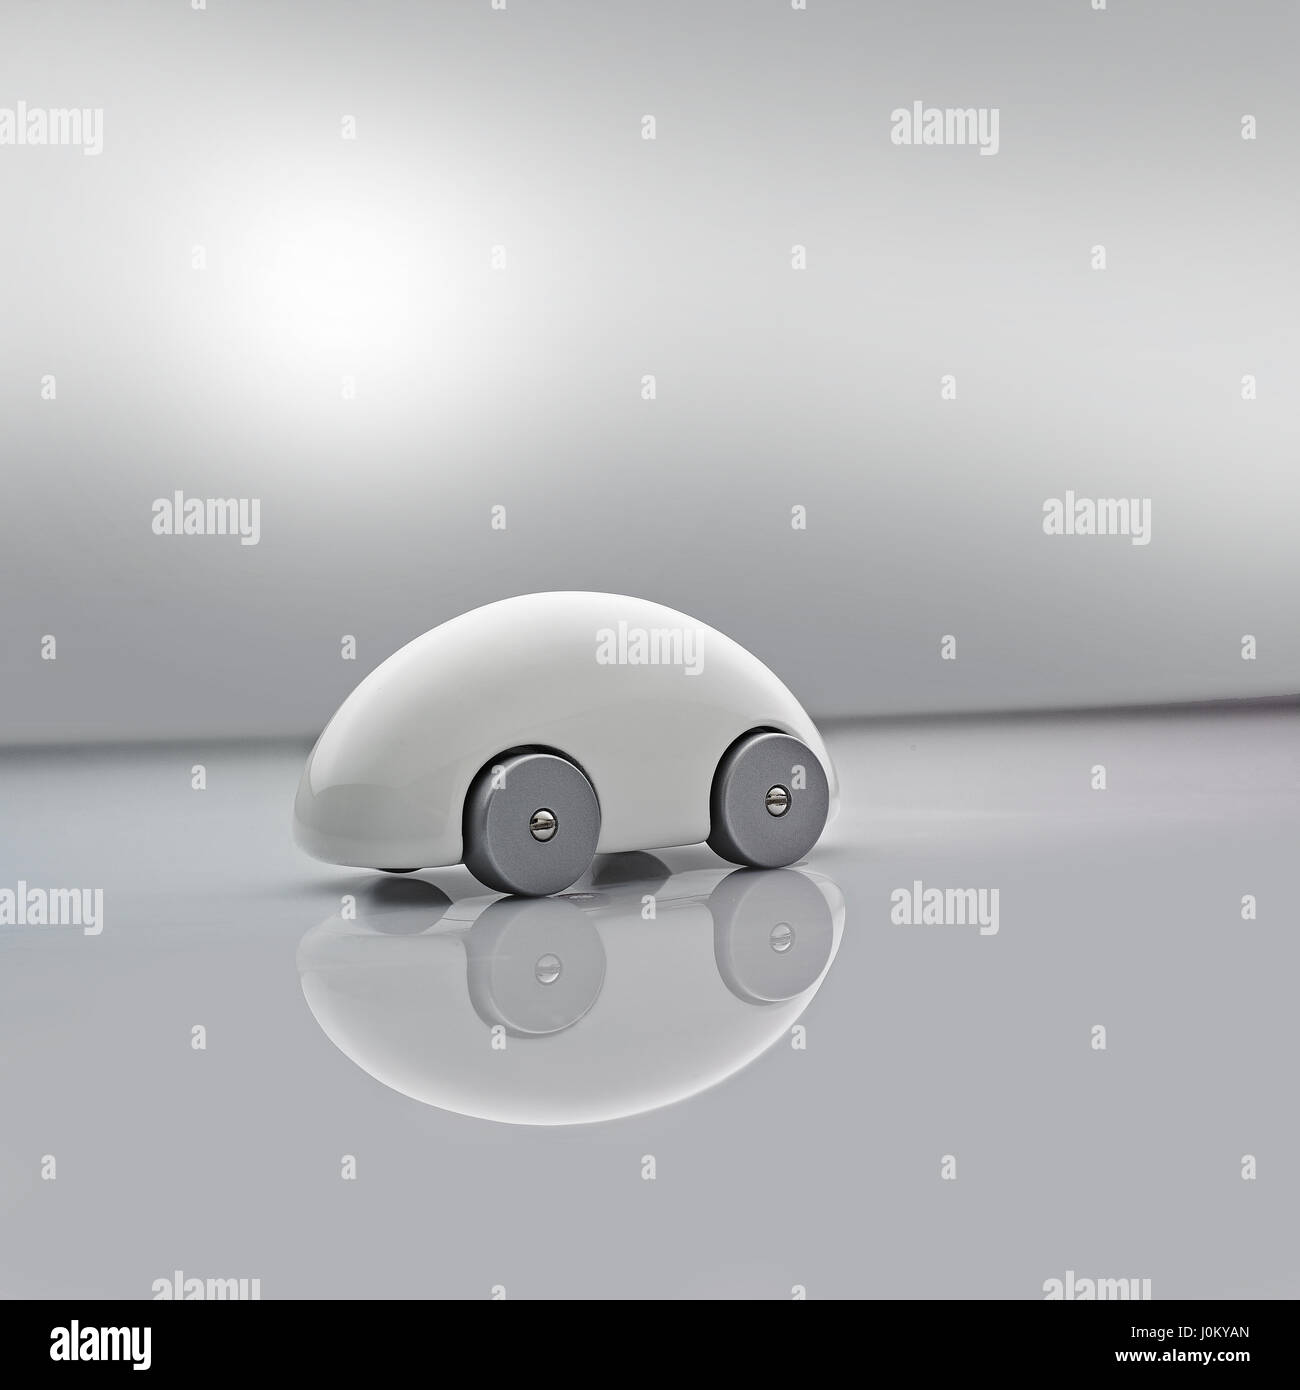 White Model Car on grey background - Stock Image